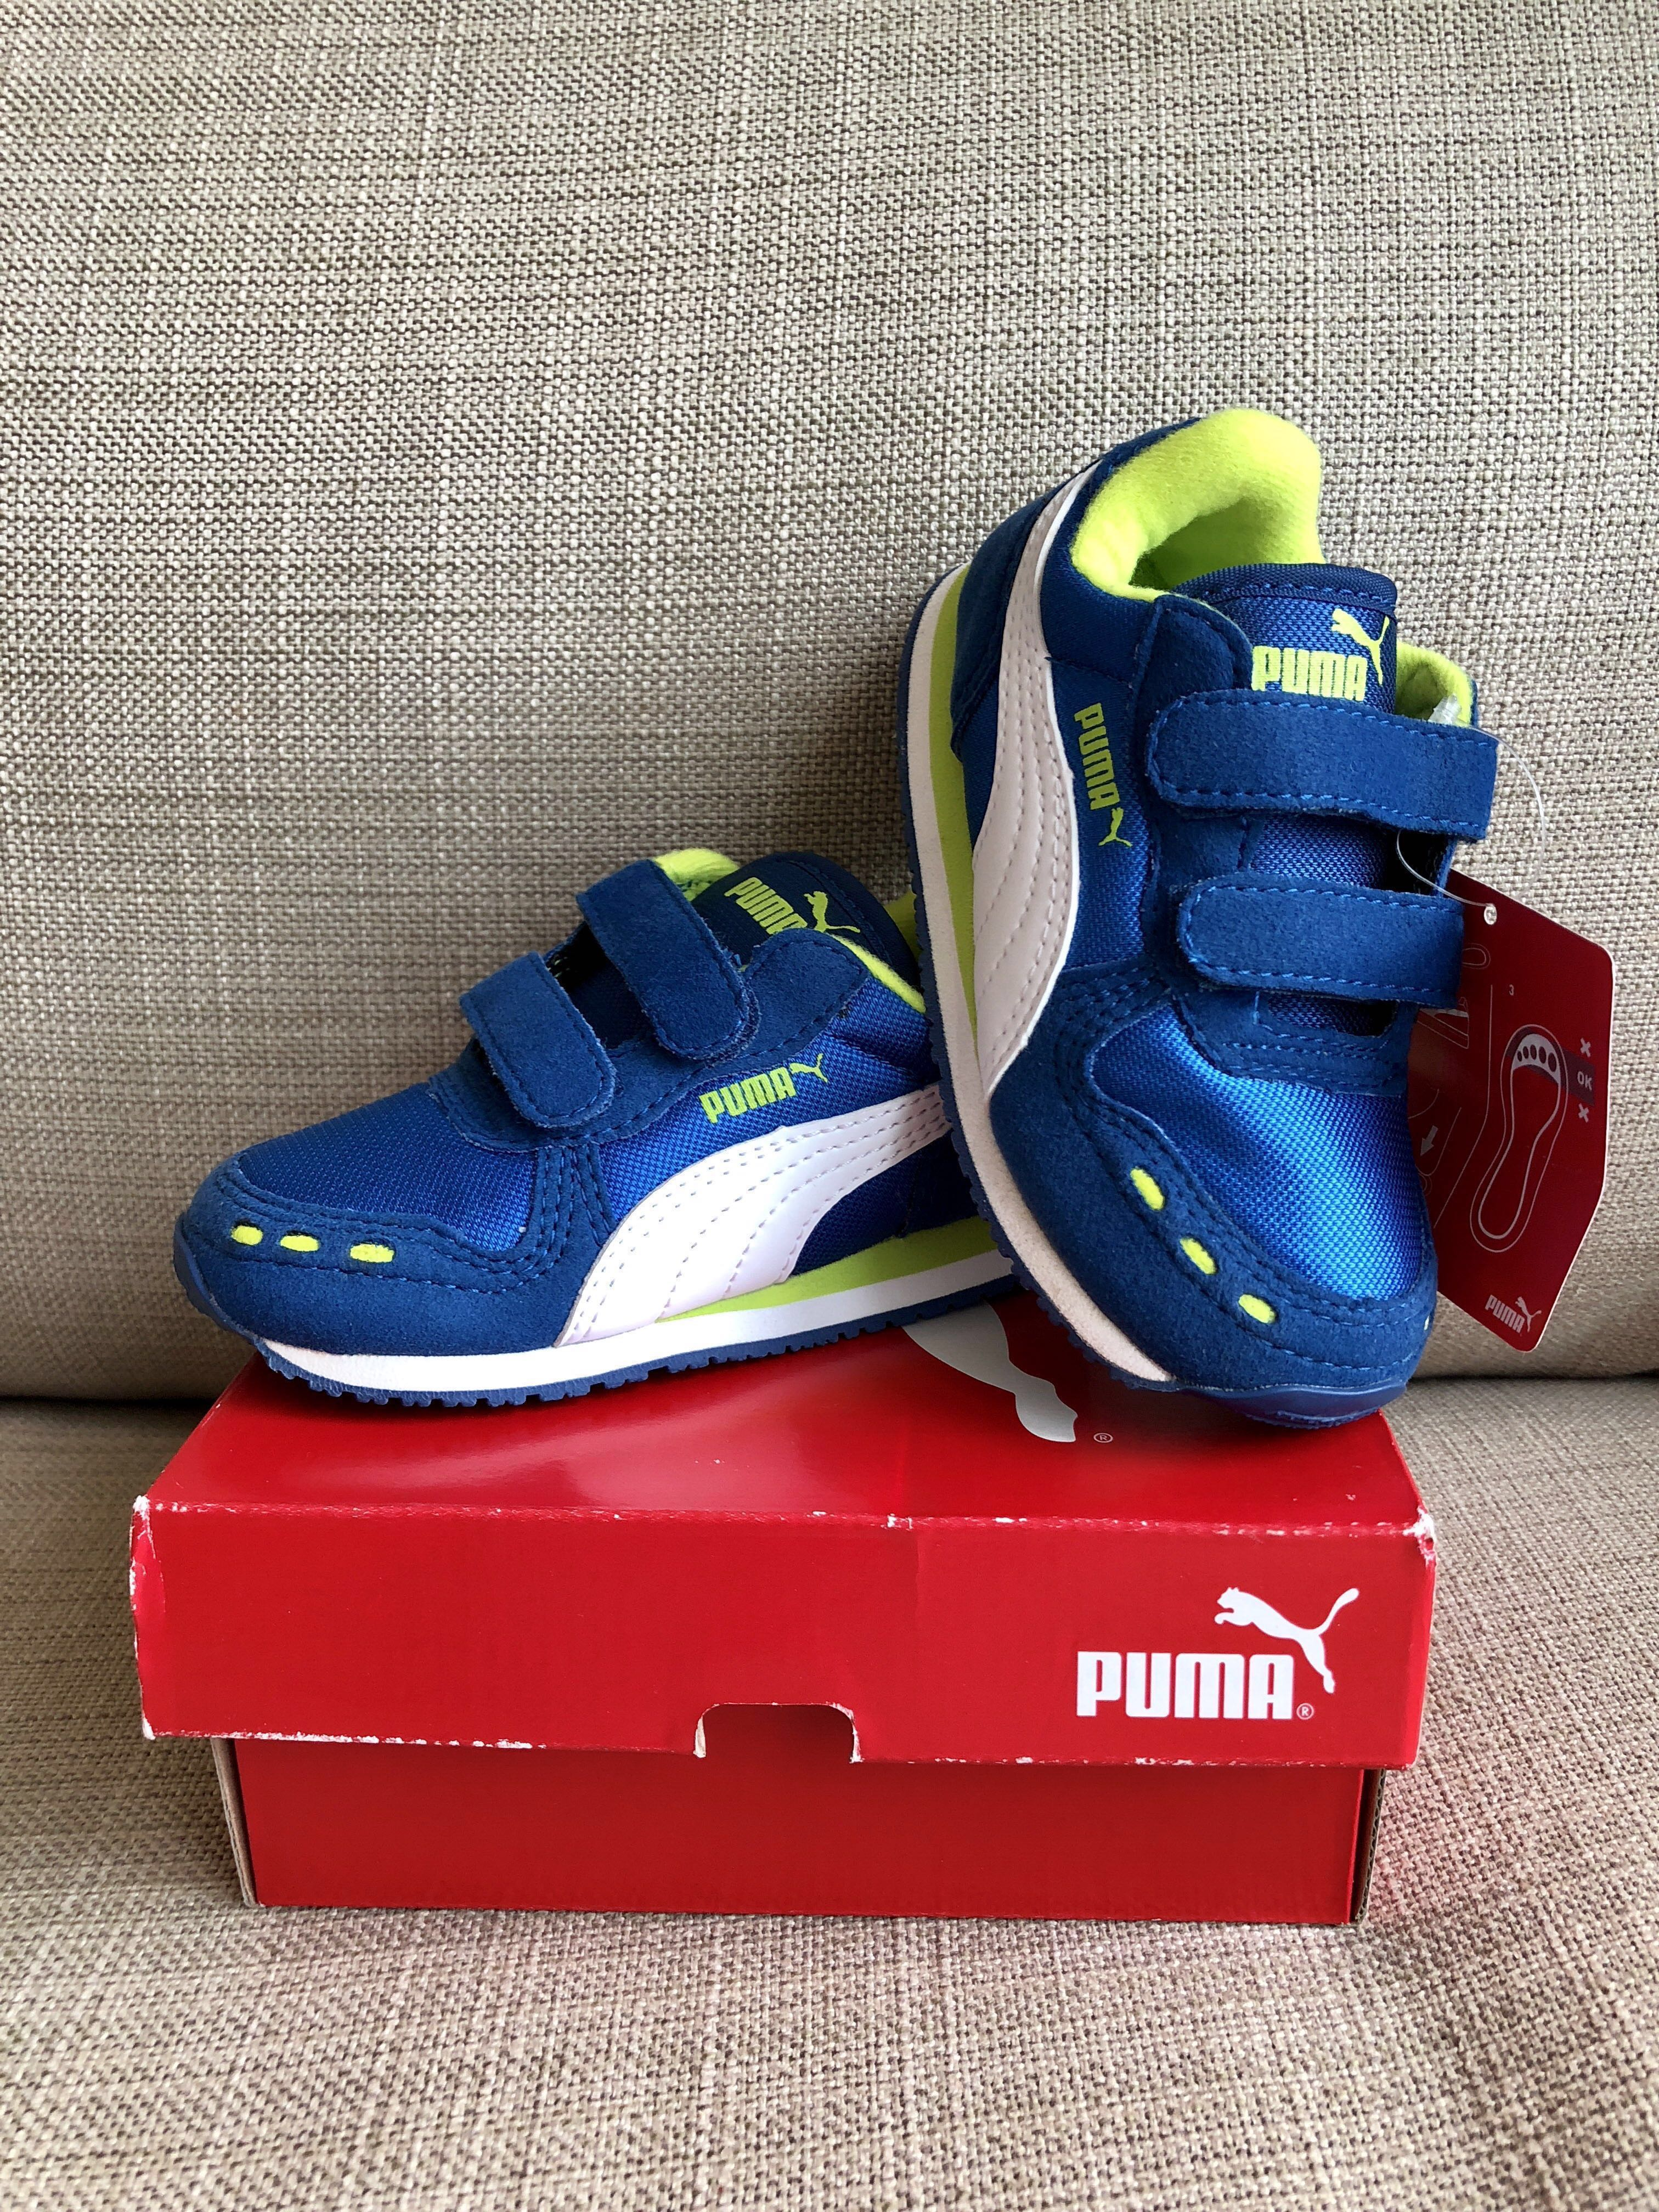 f9914ade98e0 SALE!! Brand NEW with tag Puma kids sports Shoes  toddler sneakers ...